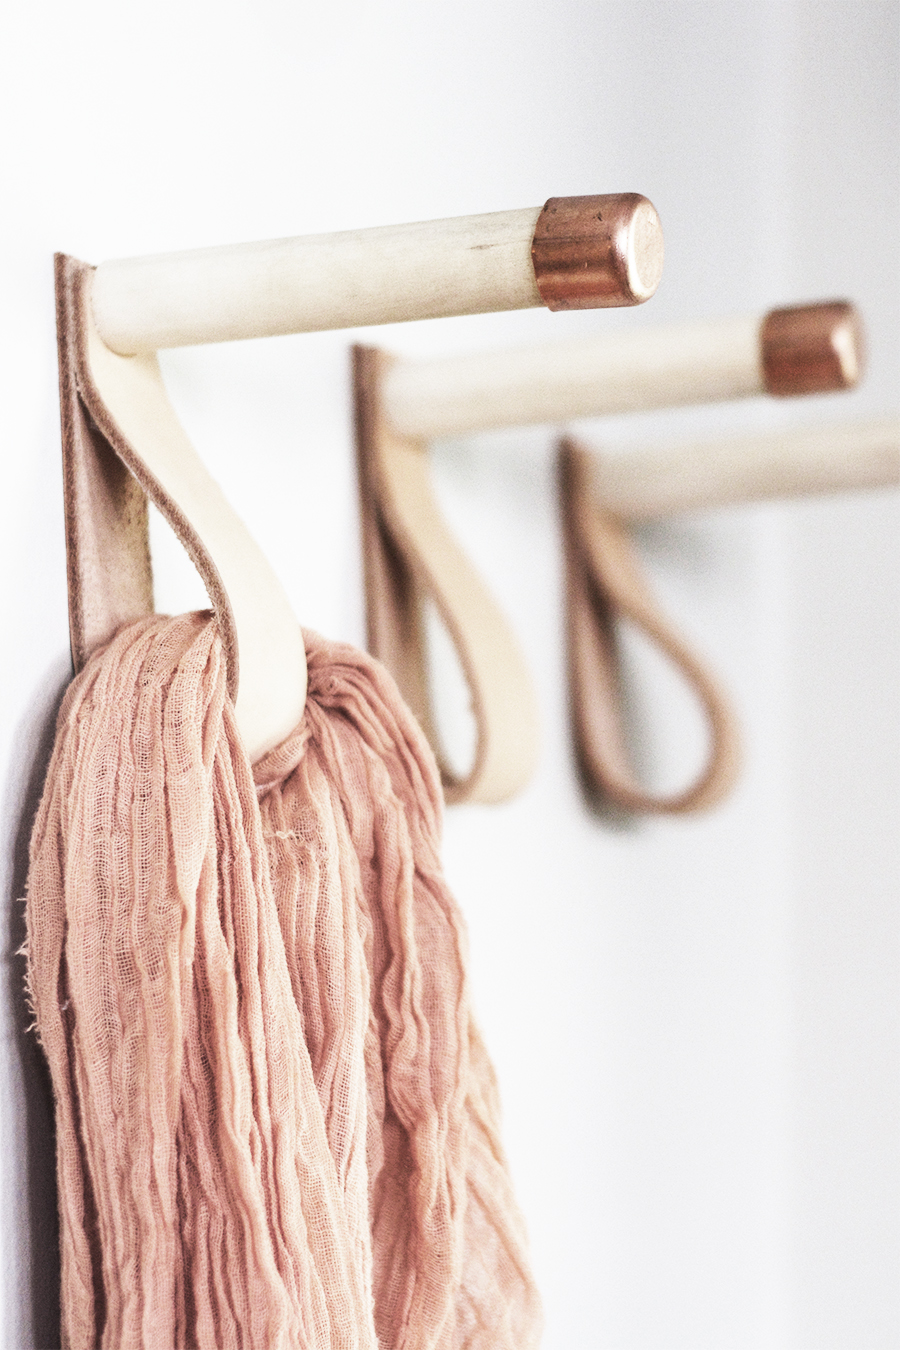 Leather, Wood and Copper Coat Hooks